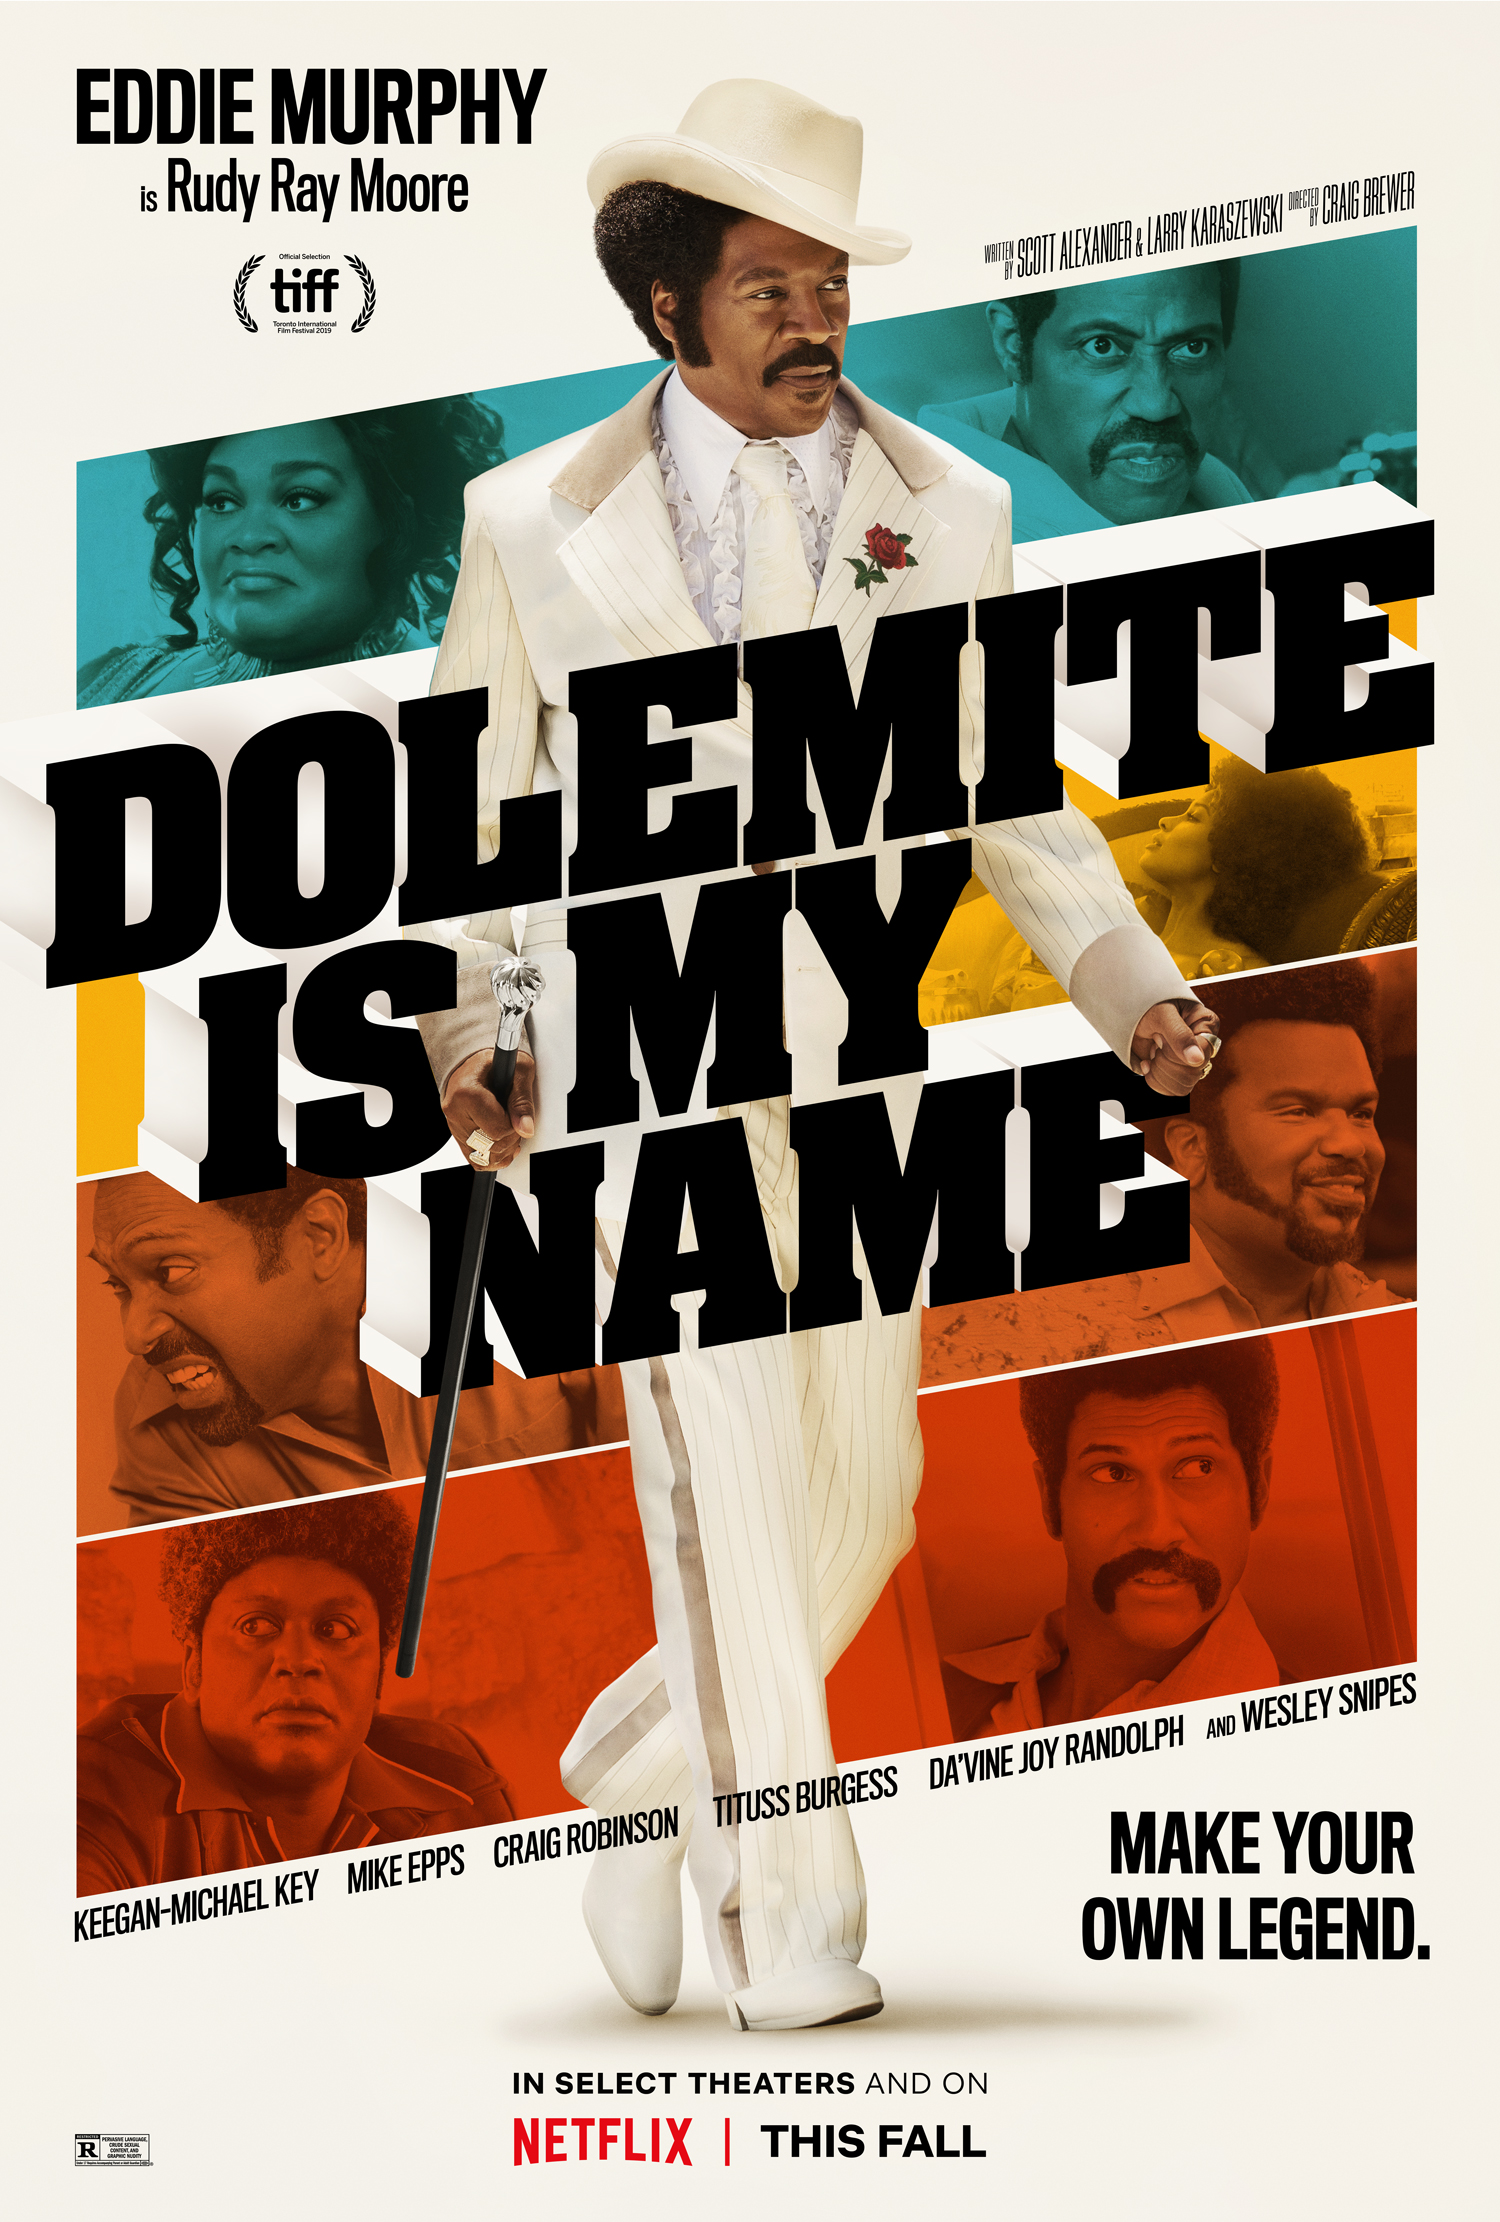 Here Is The First Trailer For Netflix Original 'Dolemite Is My Name'